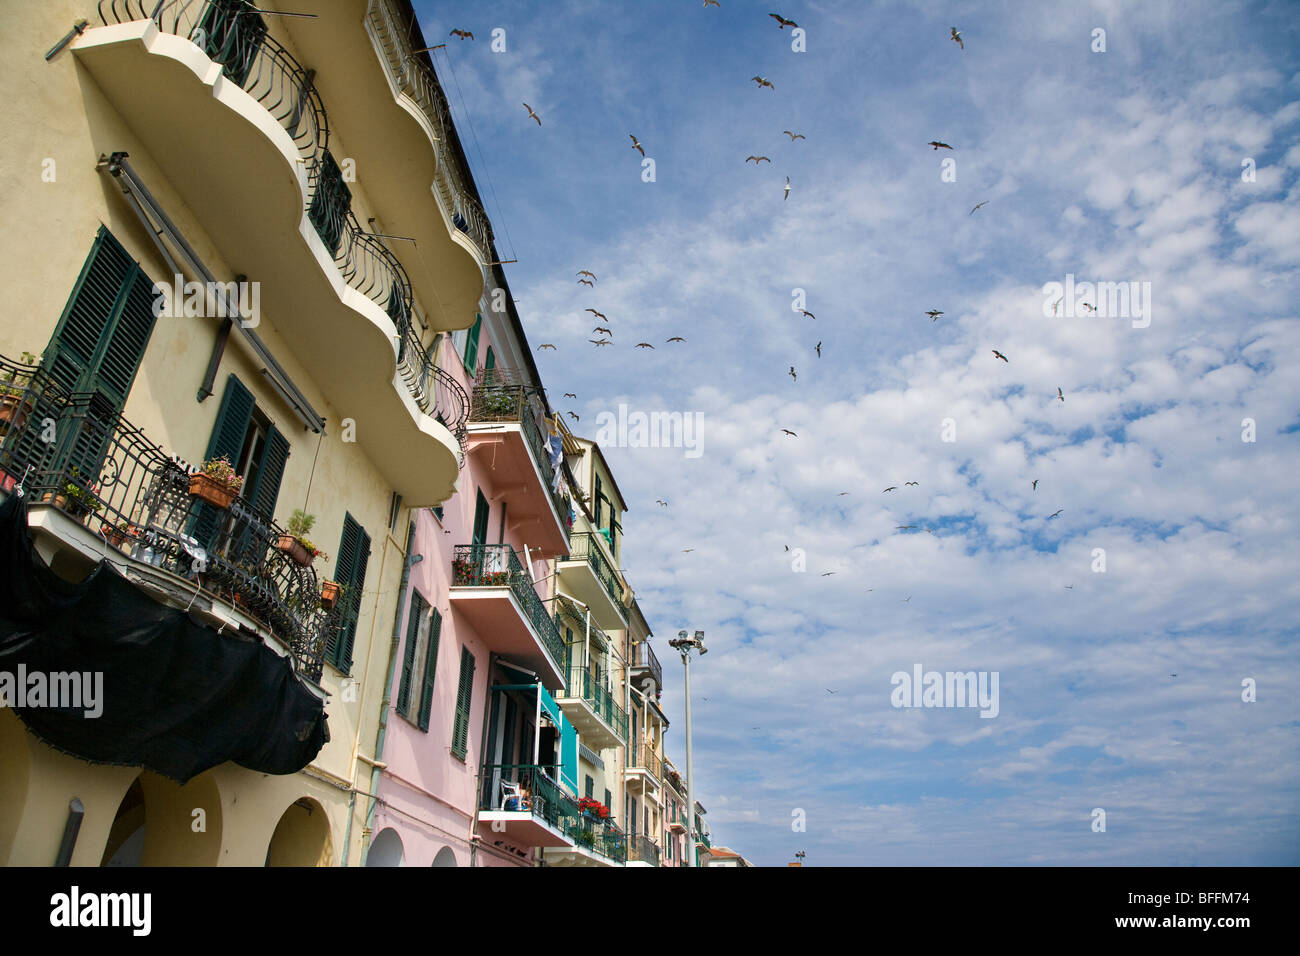 Waterfront building and birds, Imperia, liguria, Italy - Stock Image